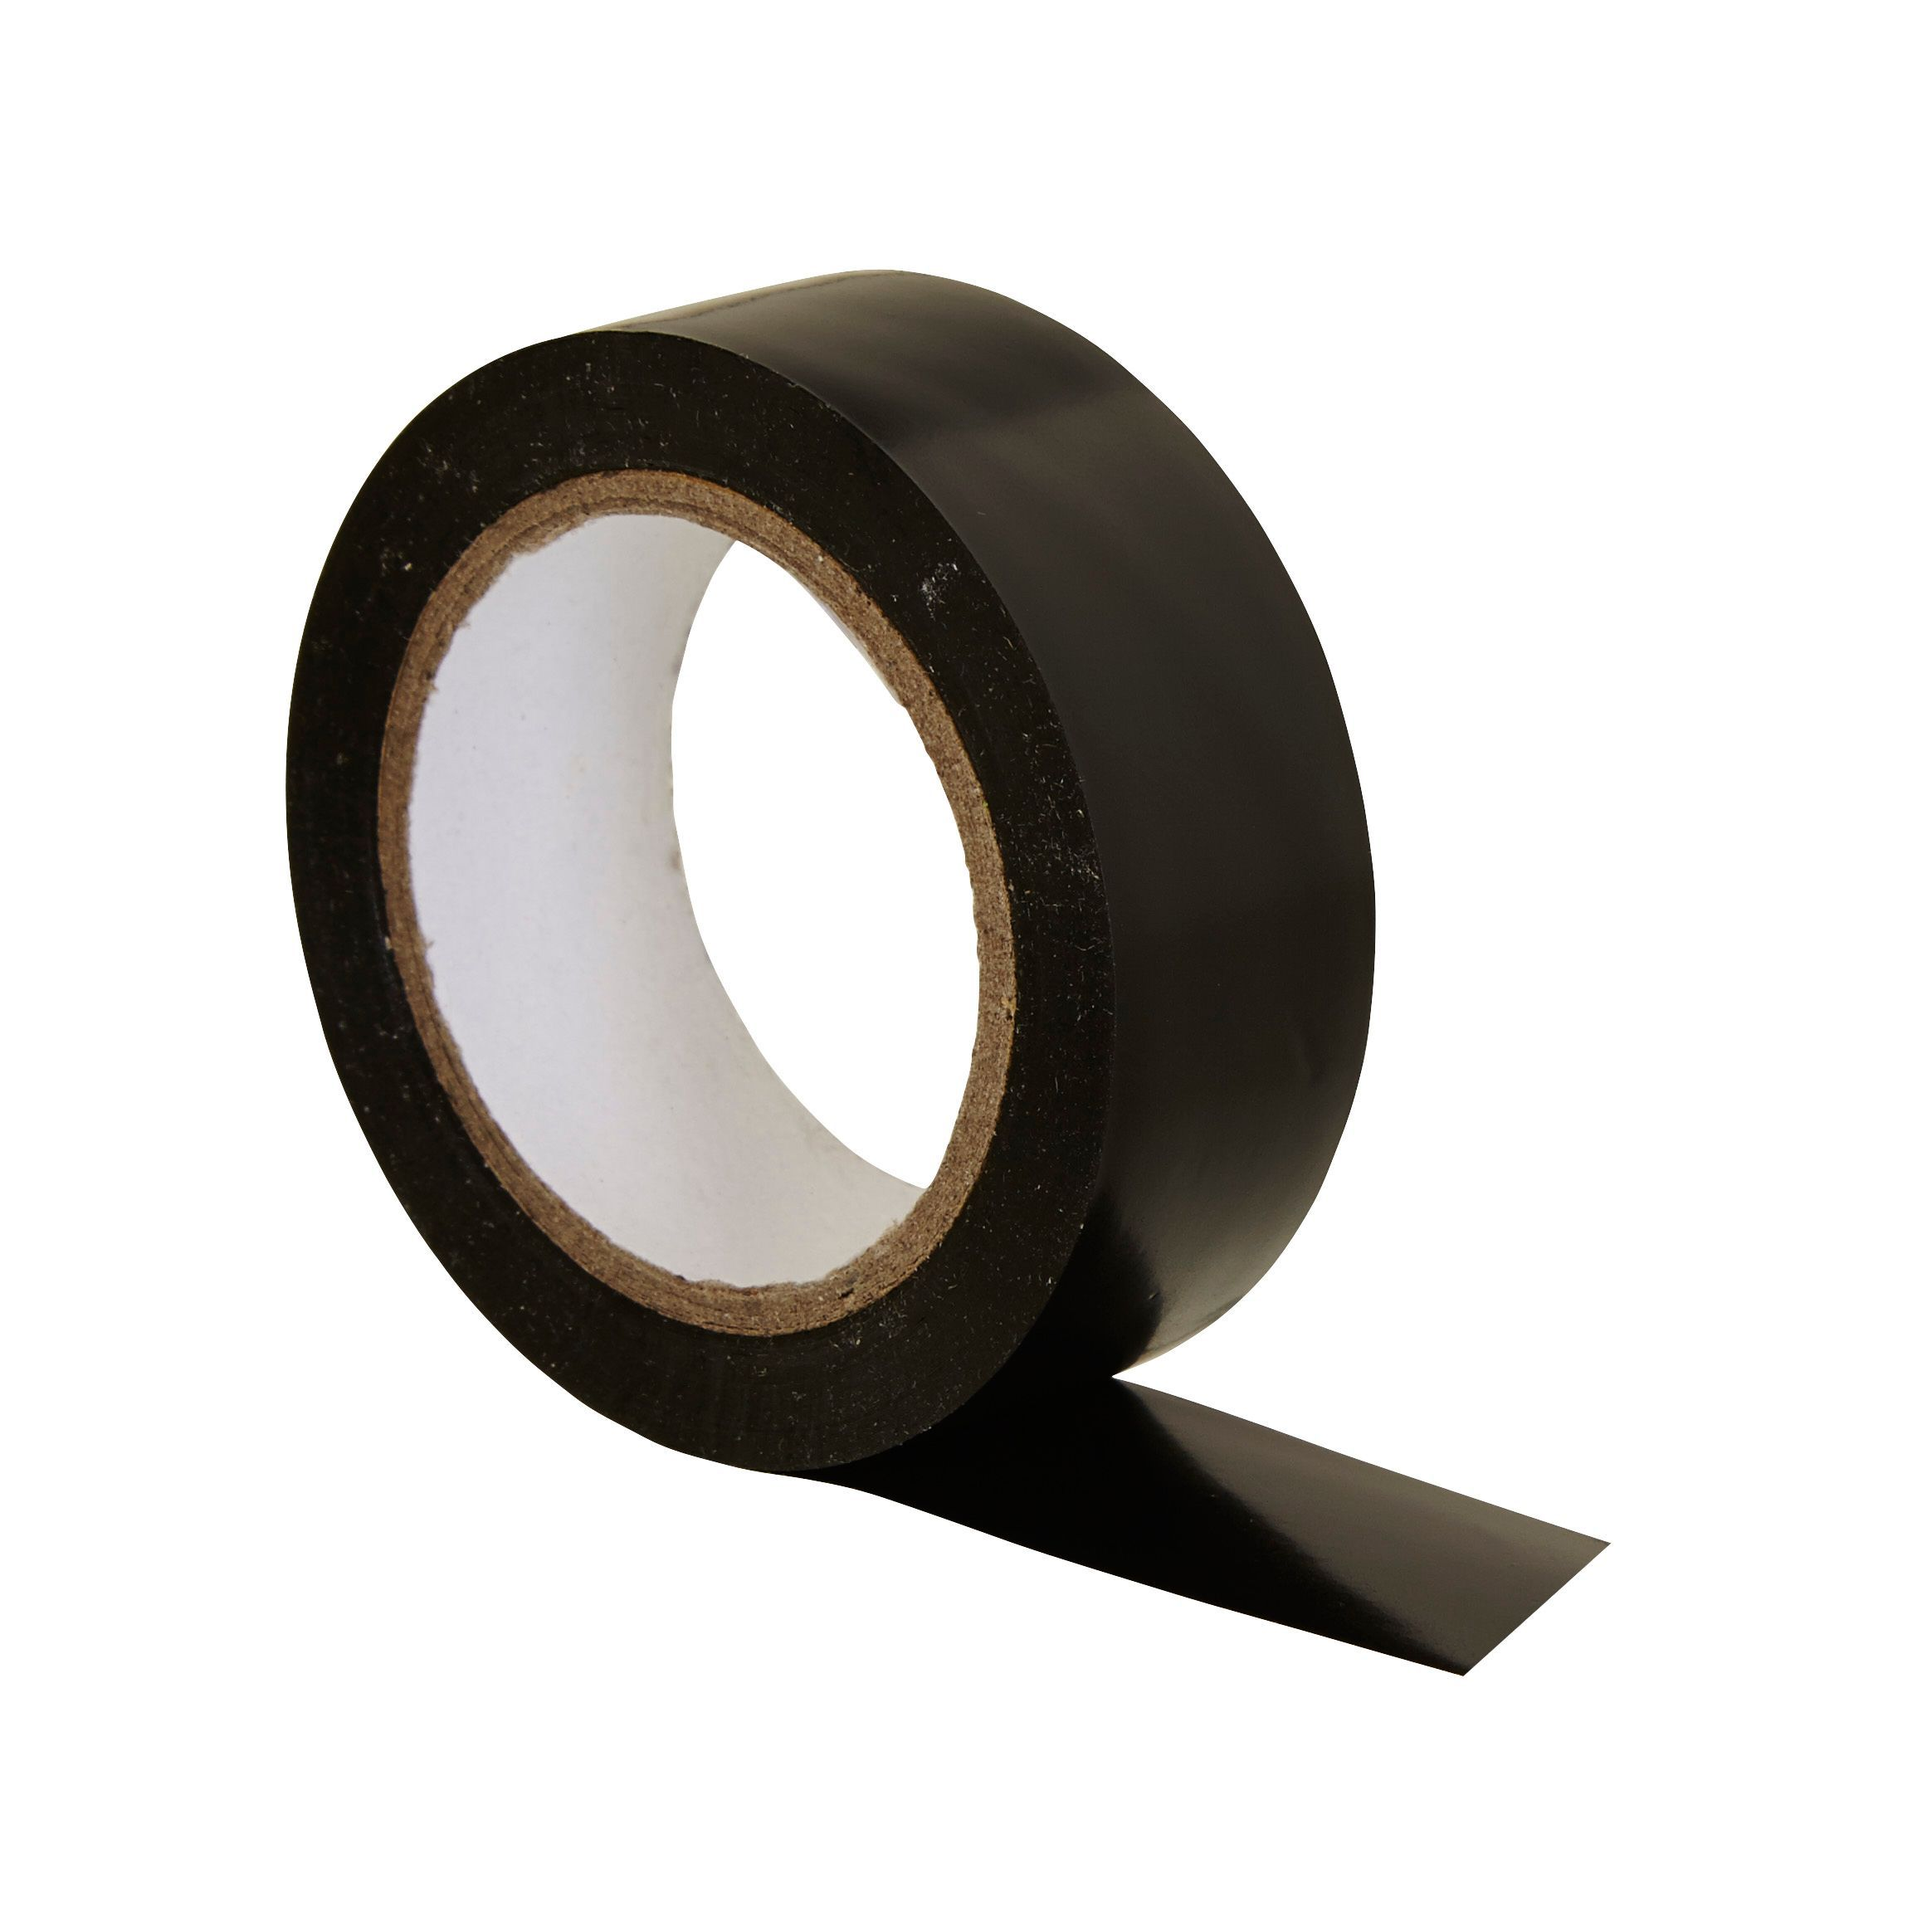 b q black insulation tape l 10m w 19mm departments. Black Bedroom Furniture Sets. Home Design Ideas